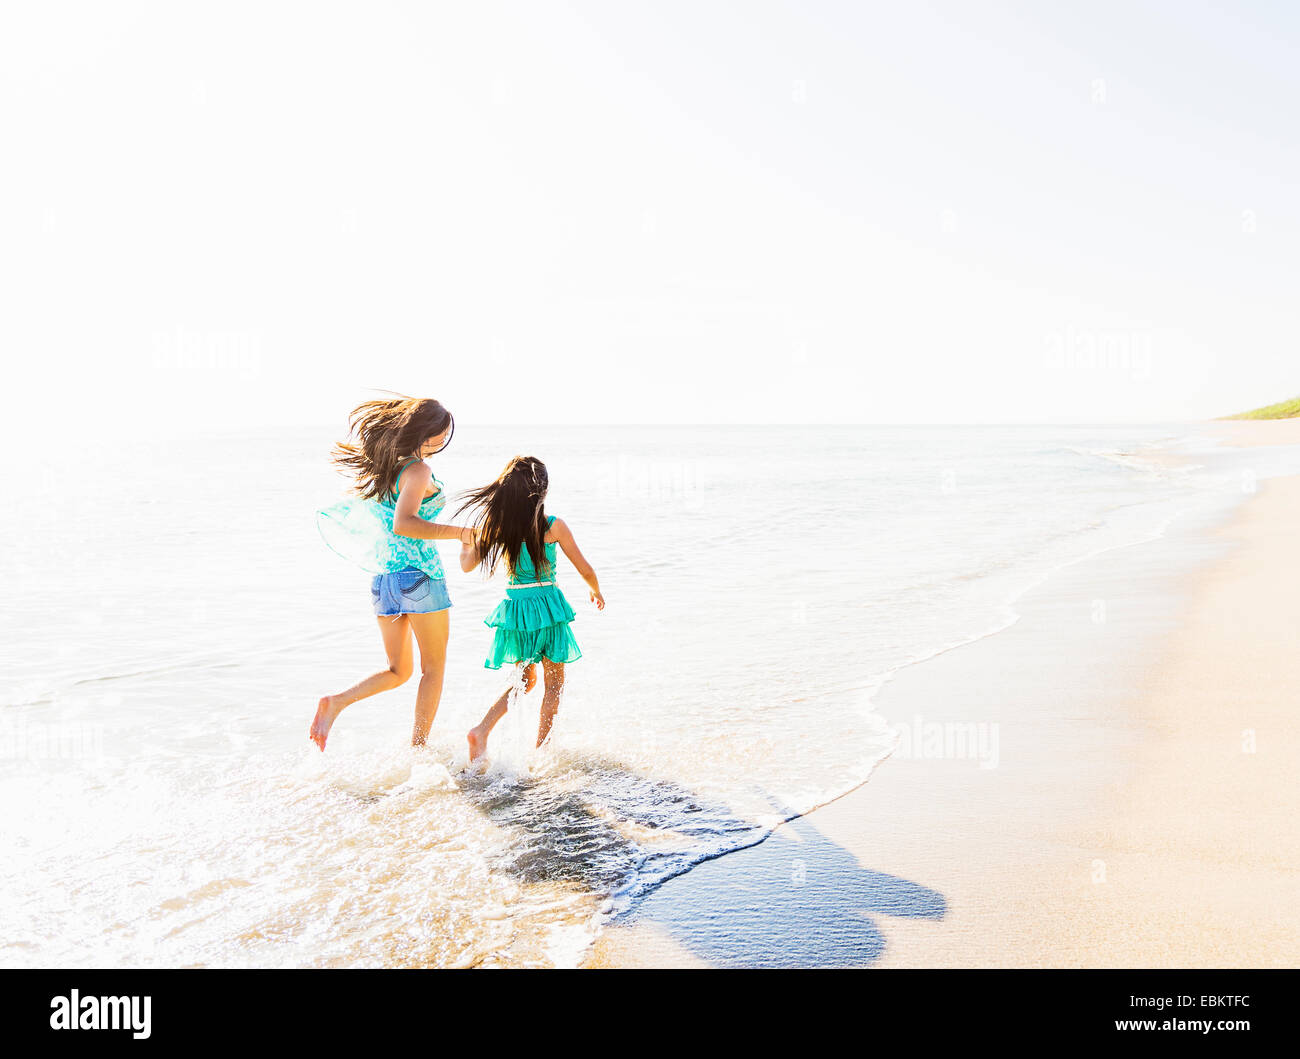 USA, Florida, Jupiter, Mom and daughter (6-7) spending time together on beach - Stock Image